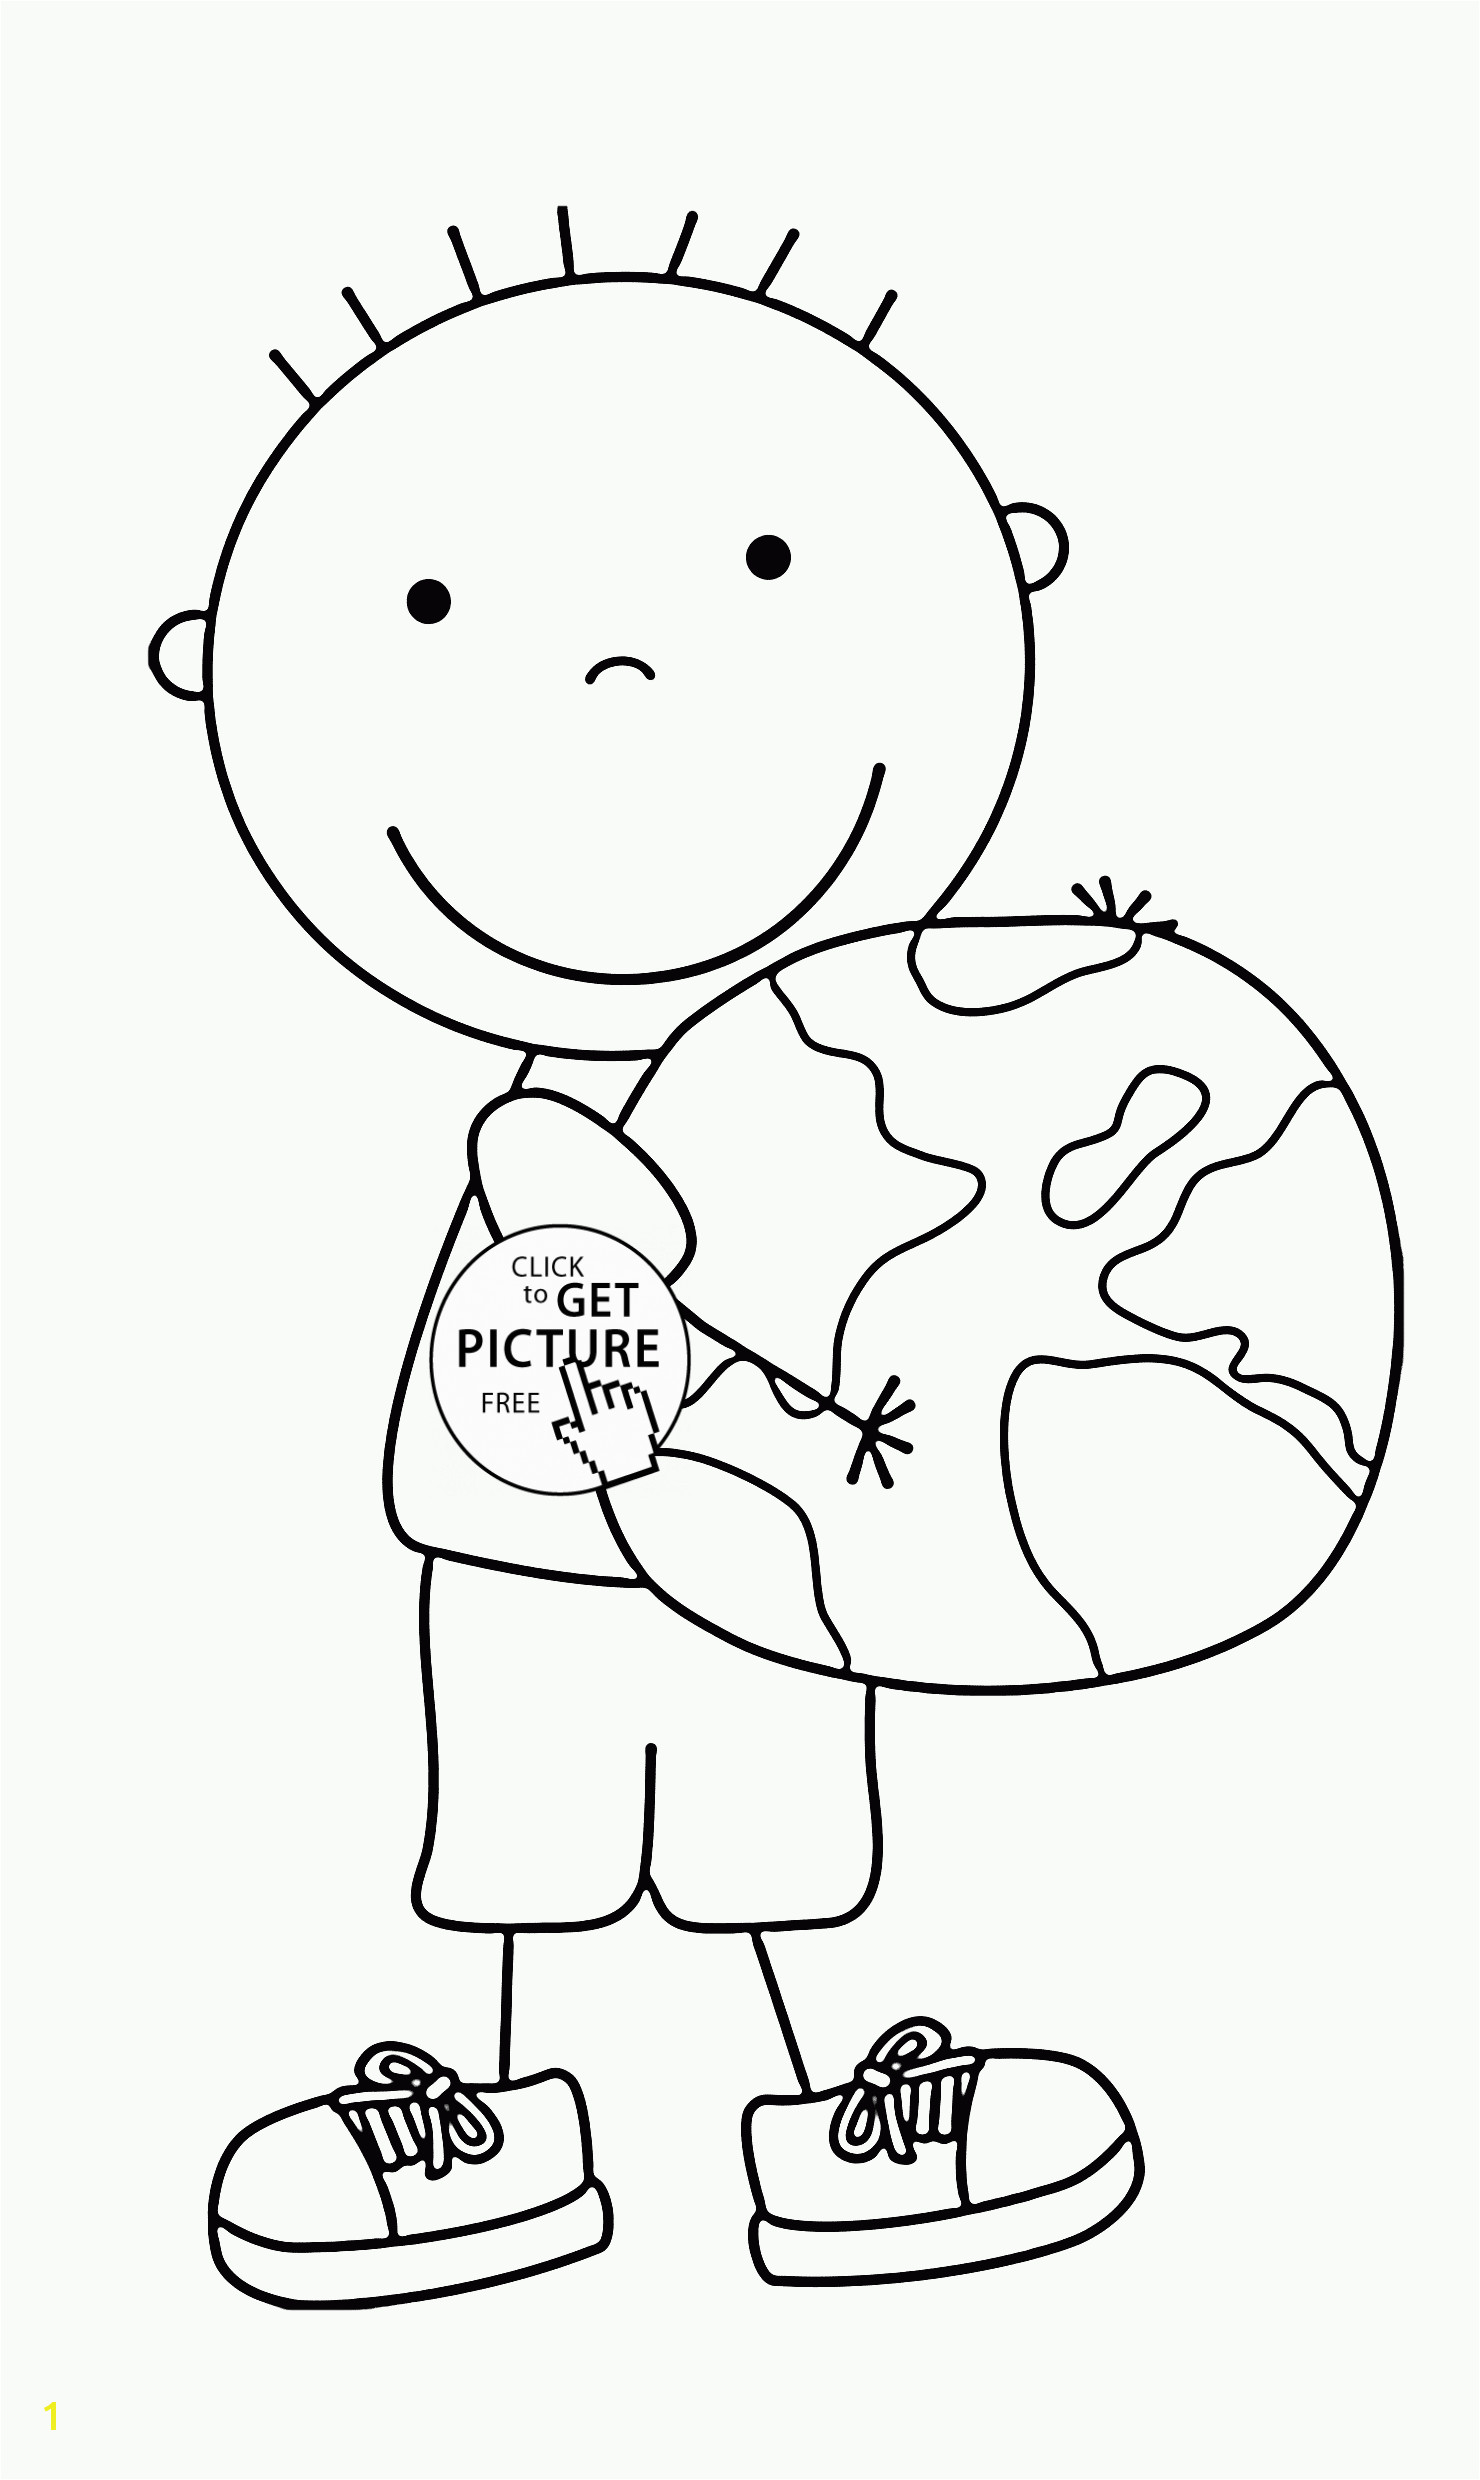 Recycling Truck Coloring Page Keep the Earth Clean and Green Earth Day Coloring Page for Kids